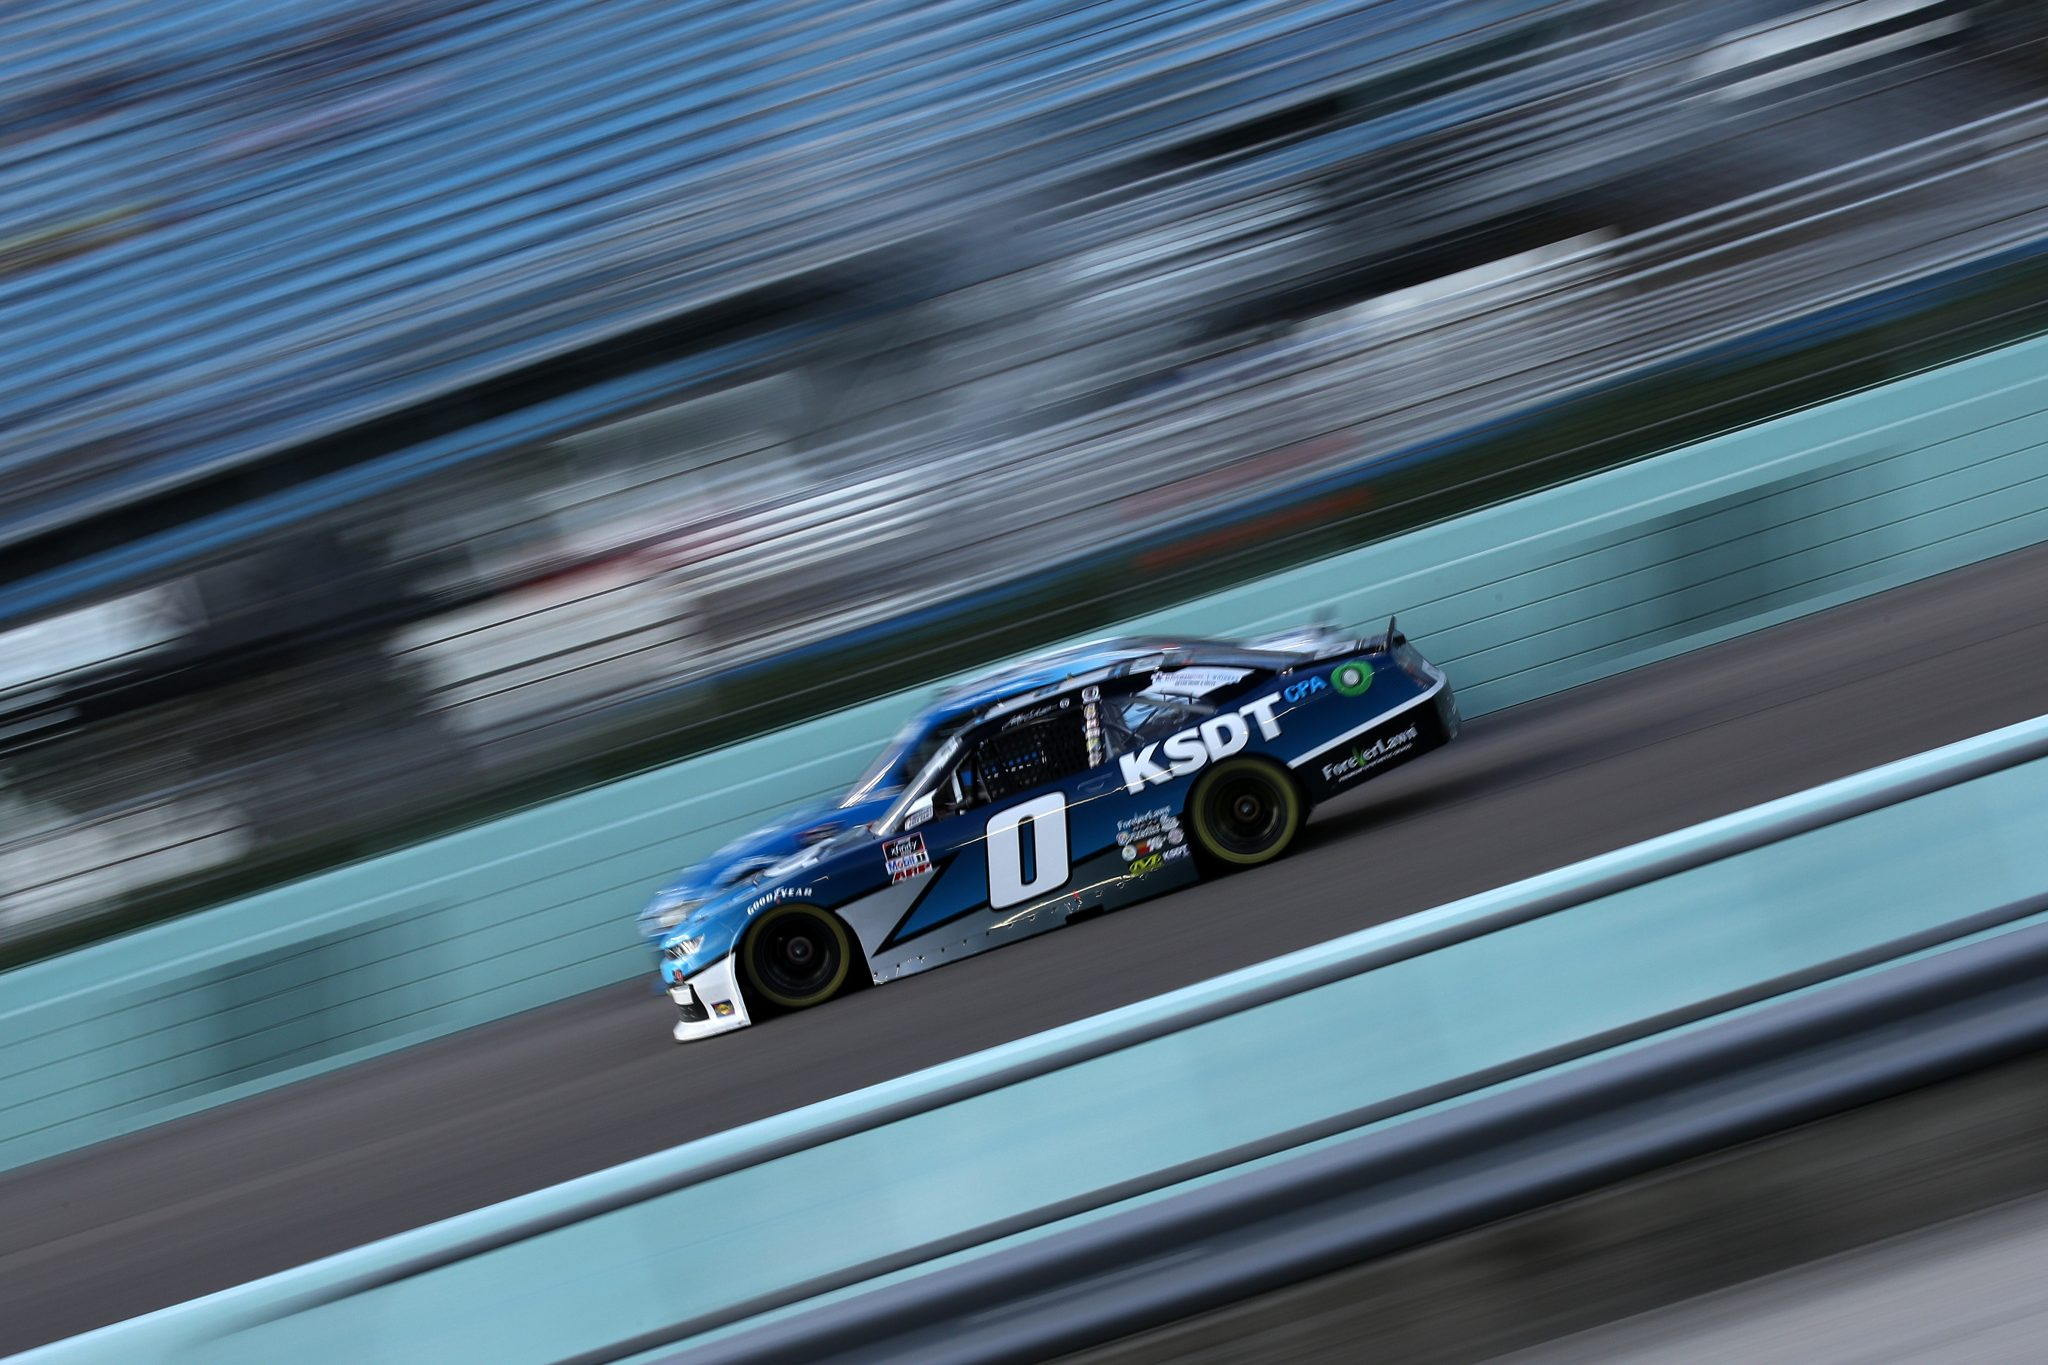 HOMESTEAD, FLORIDA - FEBRUARY 27: Jeffrey Earnhardt, driver of the #0 KSDT CPA Chevrolet, drives during the NASCAR Xfinity Series Contender Boats 250 at Homestead-Miami Speedway on February 27, 2021 in Homestead, Florida. (Photo by Sean Gardner/Getty Images) | Getty Images